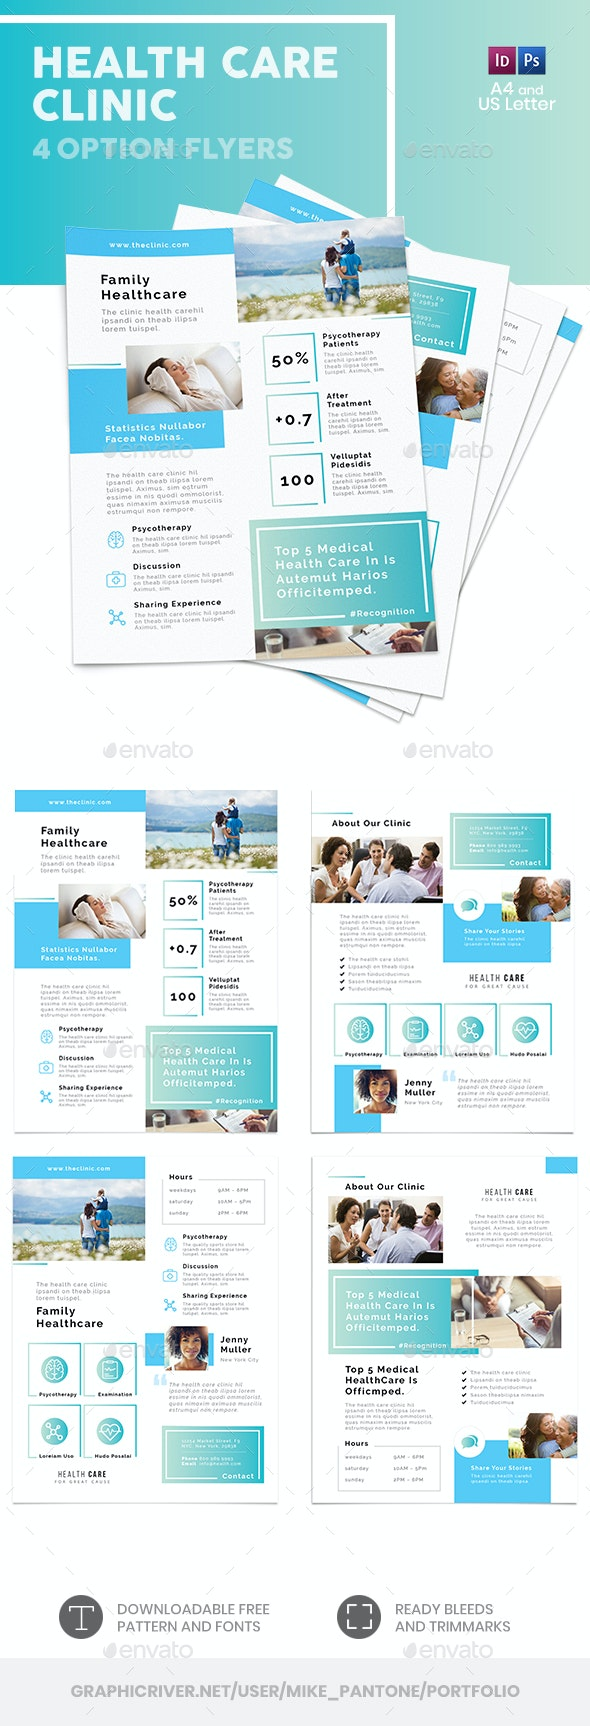 Health Care Clinic Flyers – 4 Options - Corporate Flyers